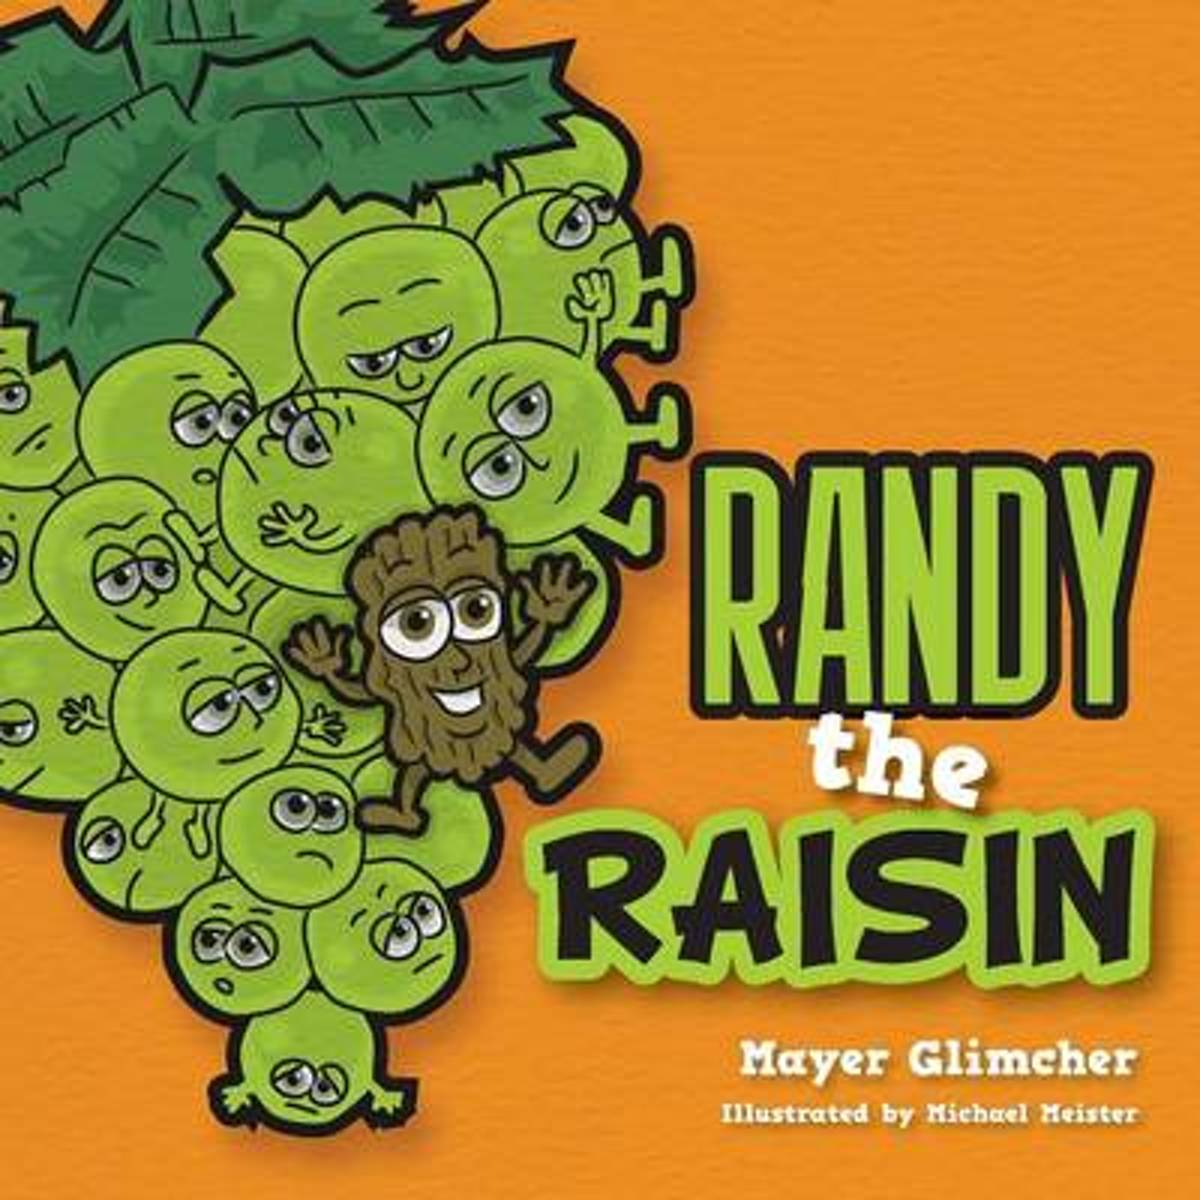 Randy the Raisin